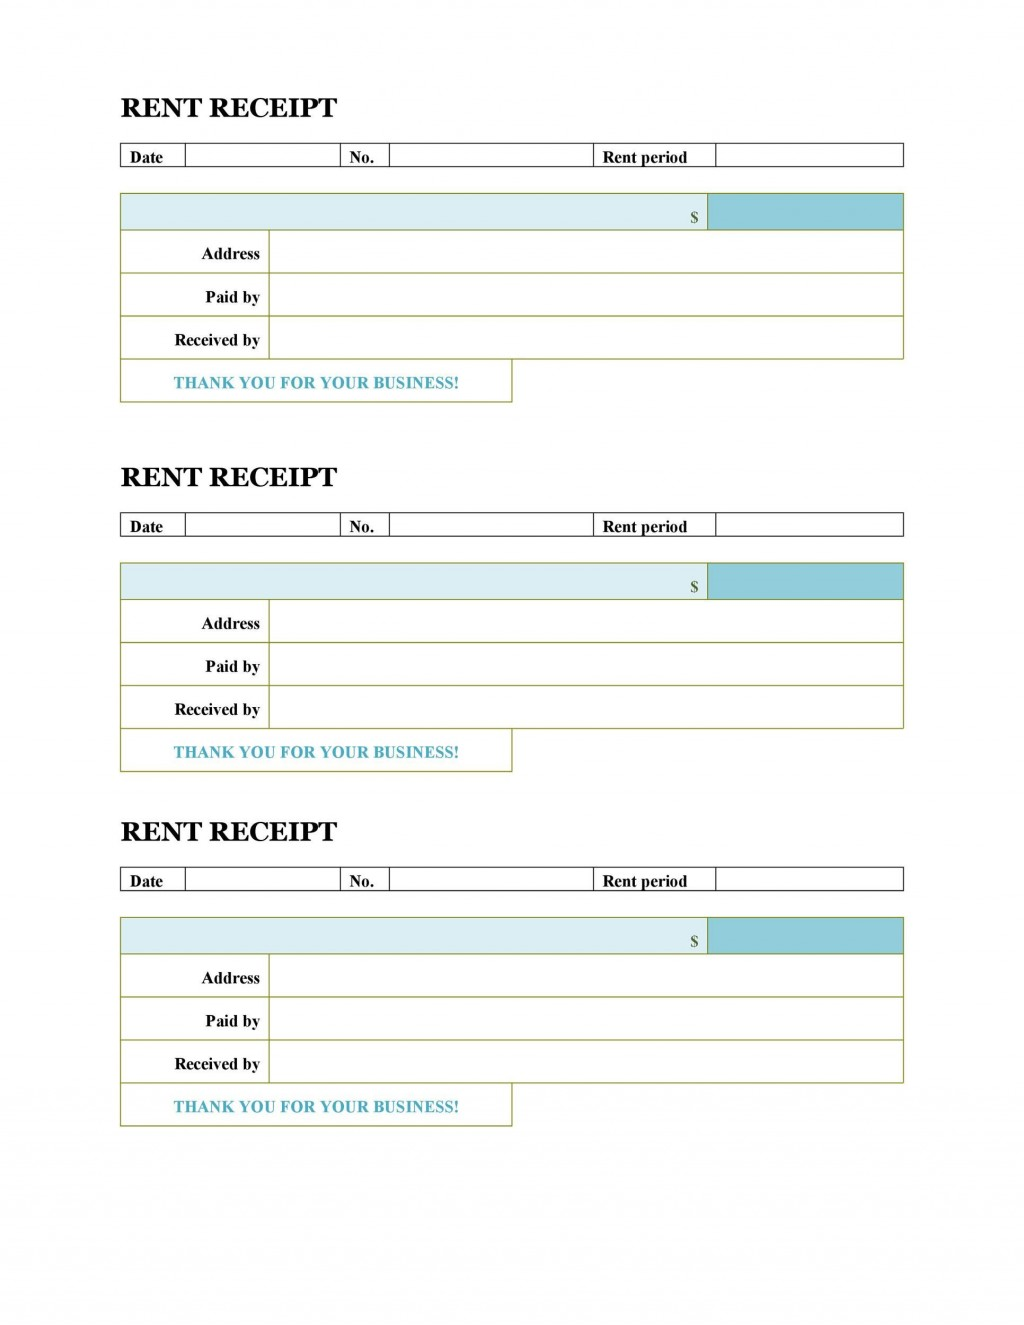 008 Unforgettable House Rent Receipt Template India Doc Sample  Format DownloadLarge